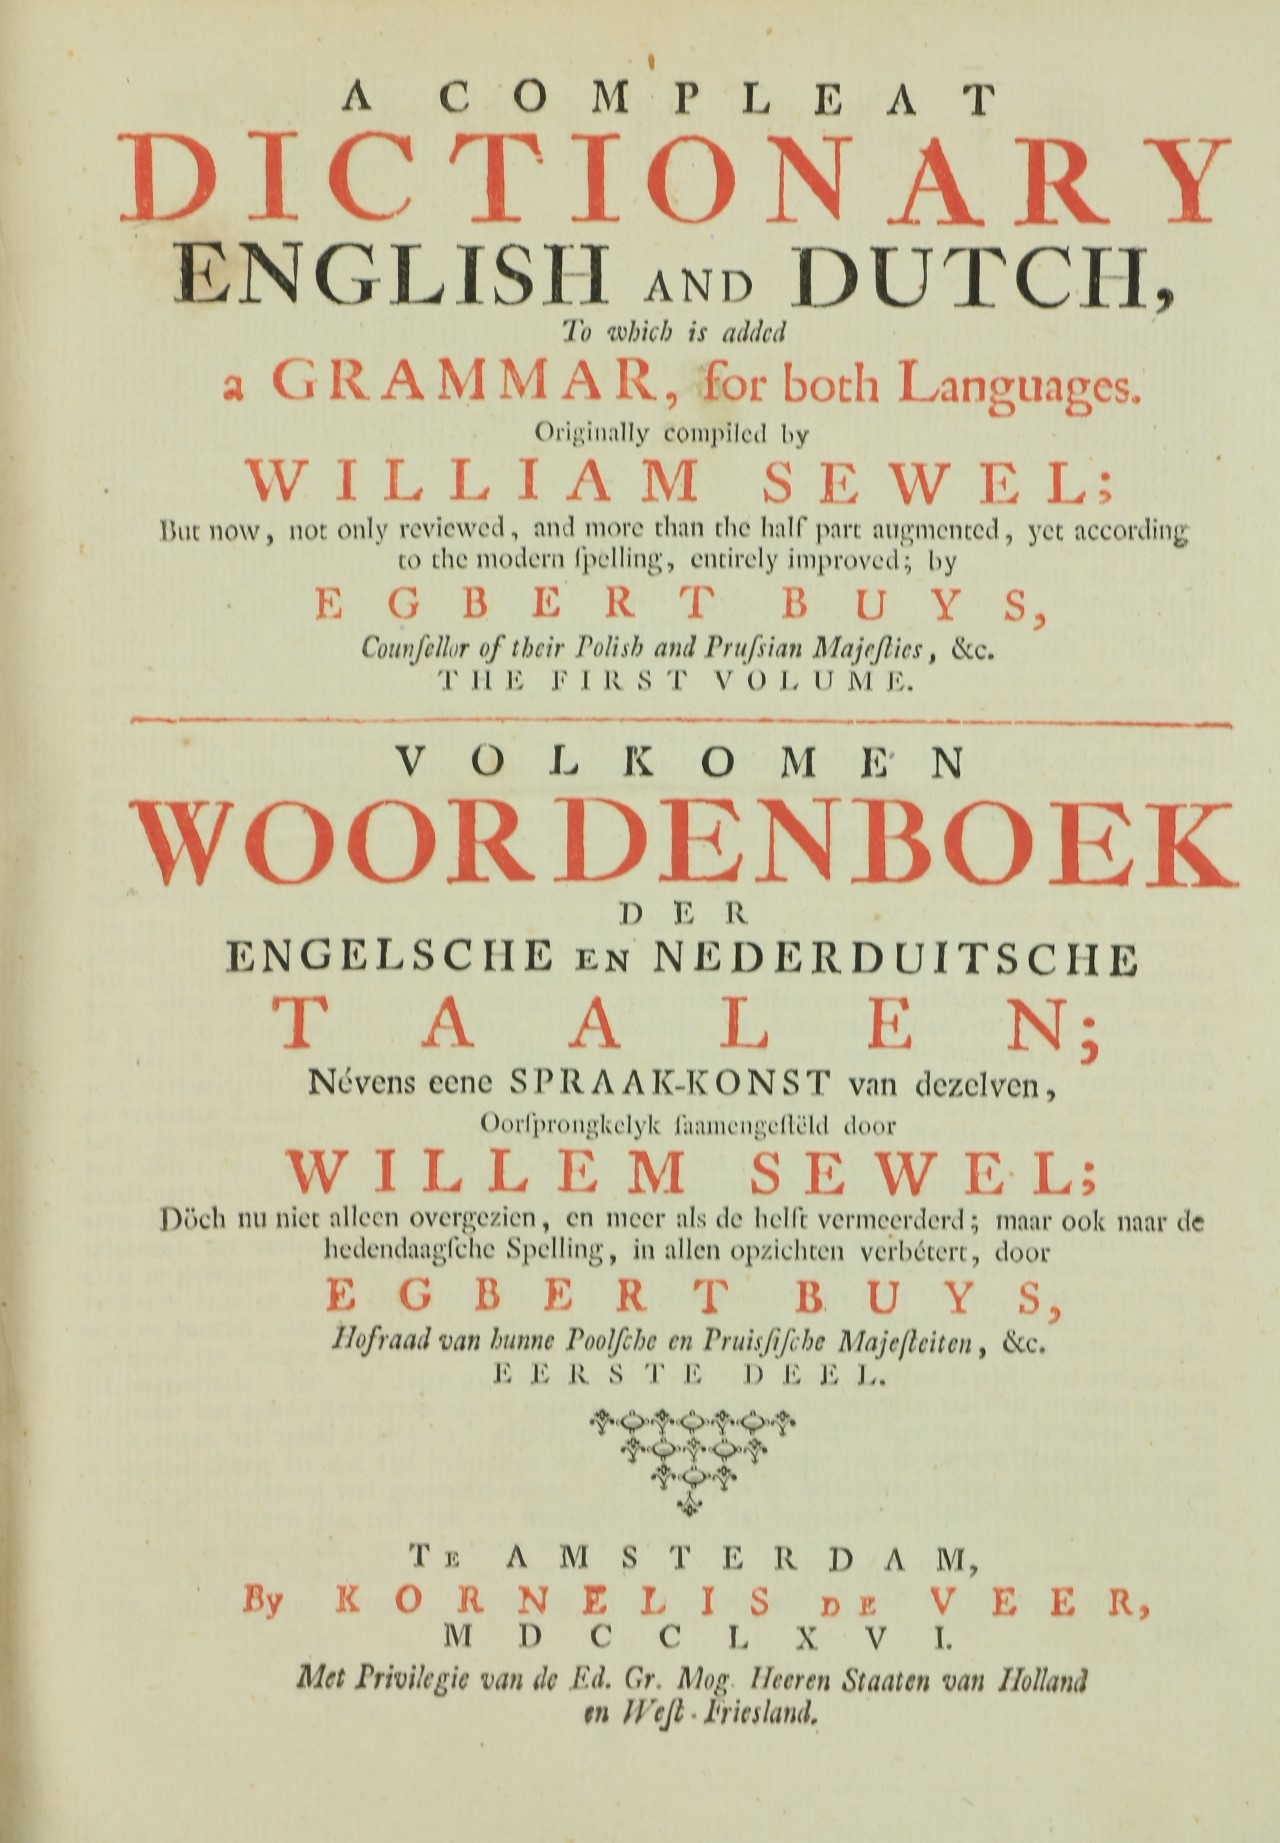 Association Copyÿ Sewel (Wm.)ÿA Complete Dictionary English and Dutch, To which is added Grammar, - Image 2 of 3